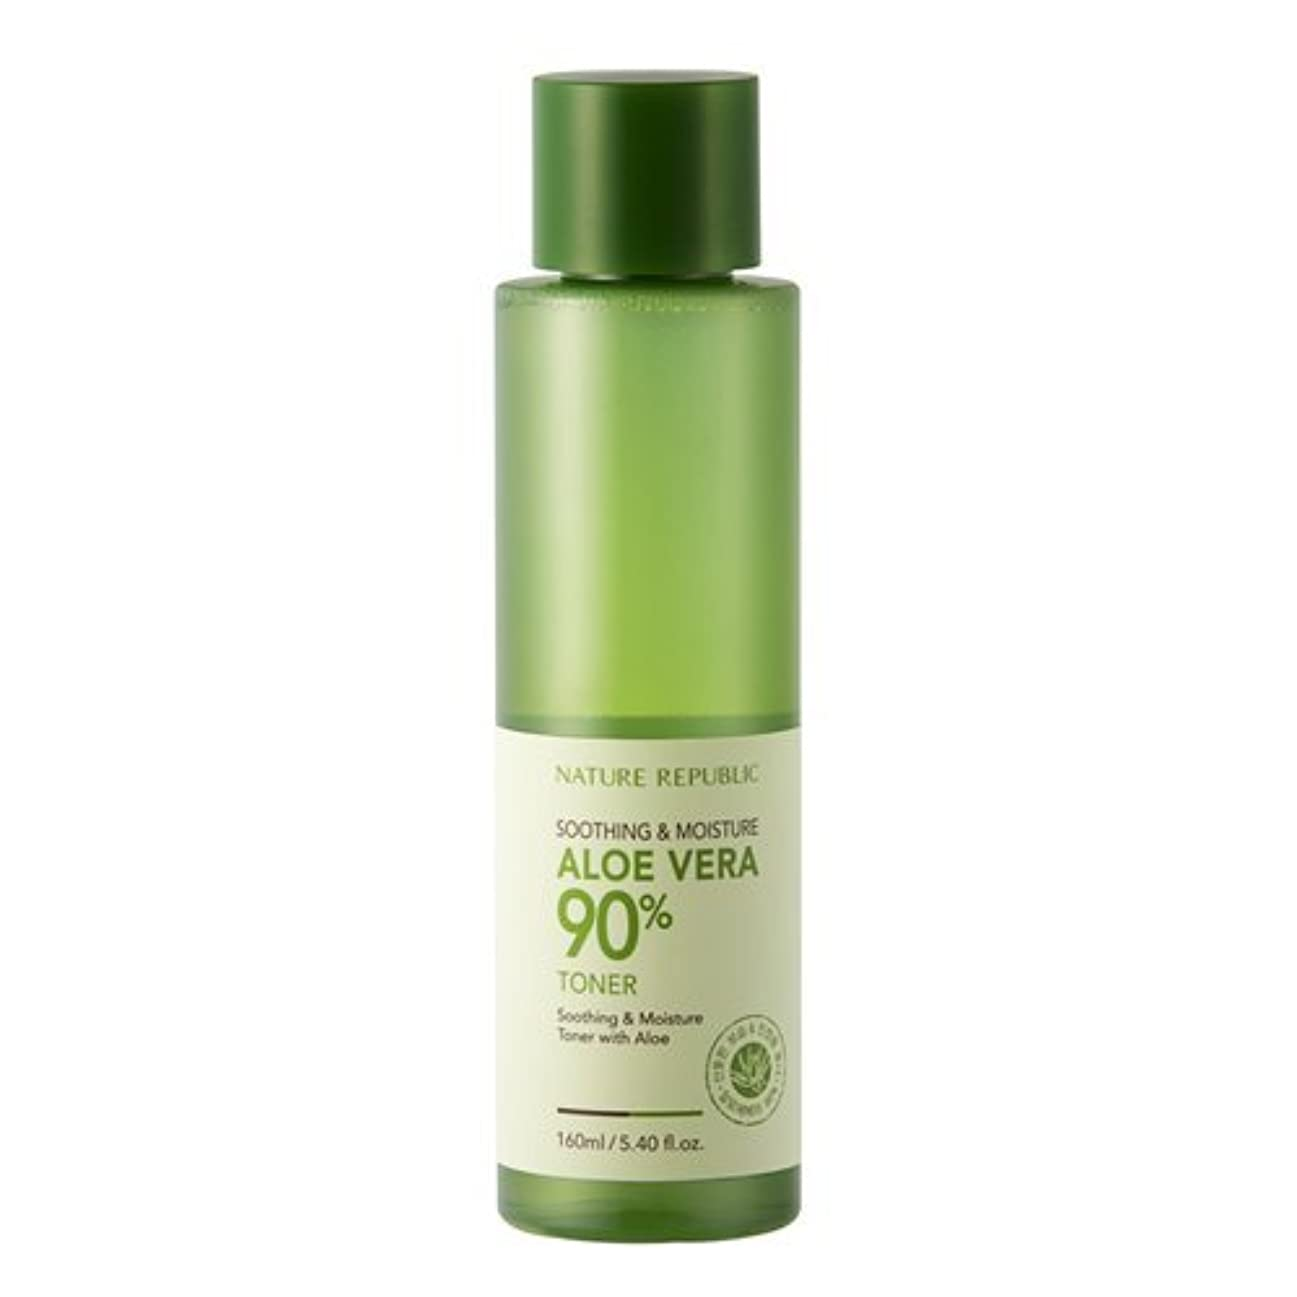 小石連続した野望Nature Republic Soothing & Moisture Aloe Vera 90% Toner 160ml